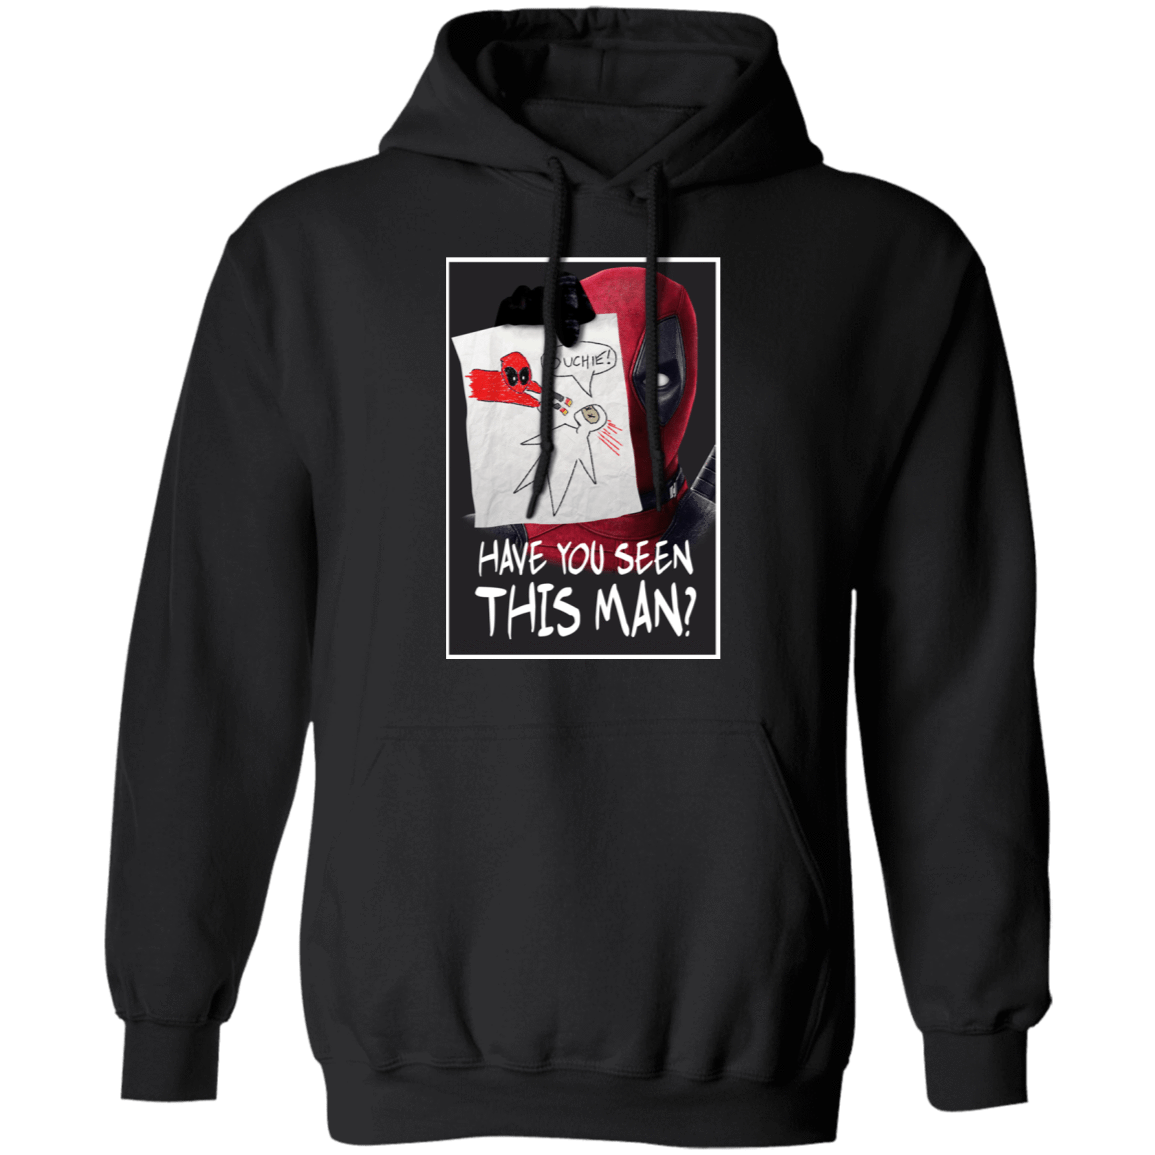 Have You Seen This Man Deadpool T-Shirts, Hoodies, Tank 541-4740-80780100-23087 - Tee Ript